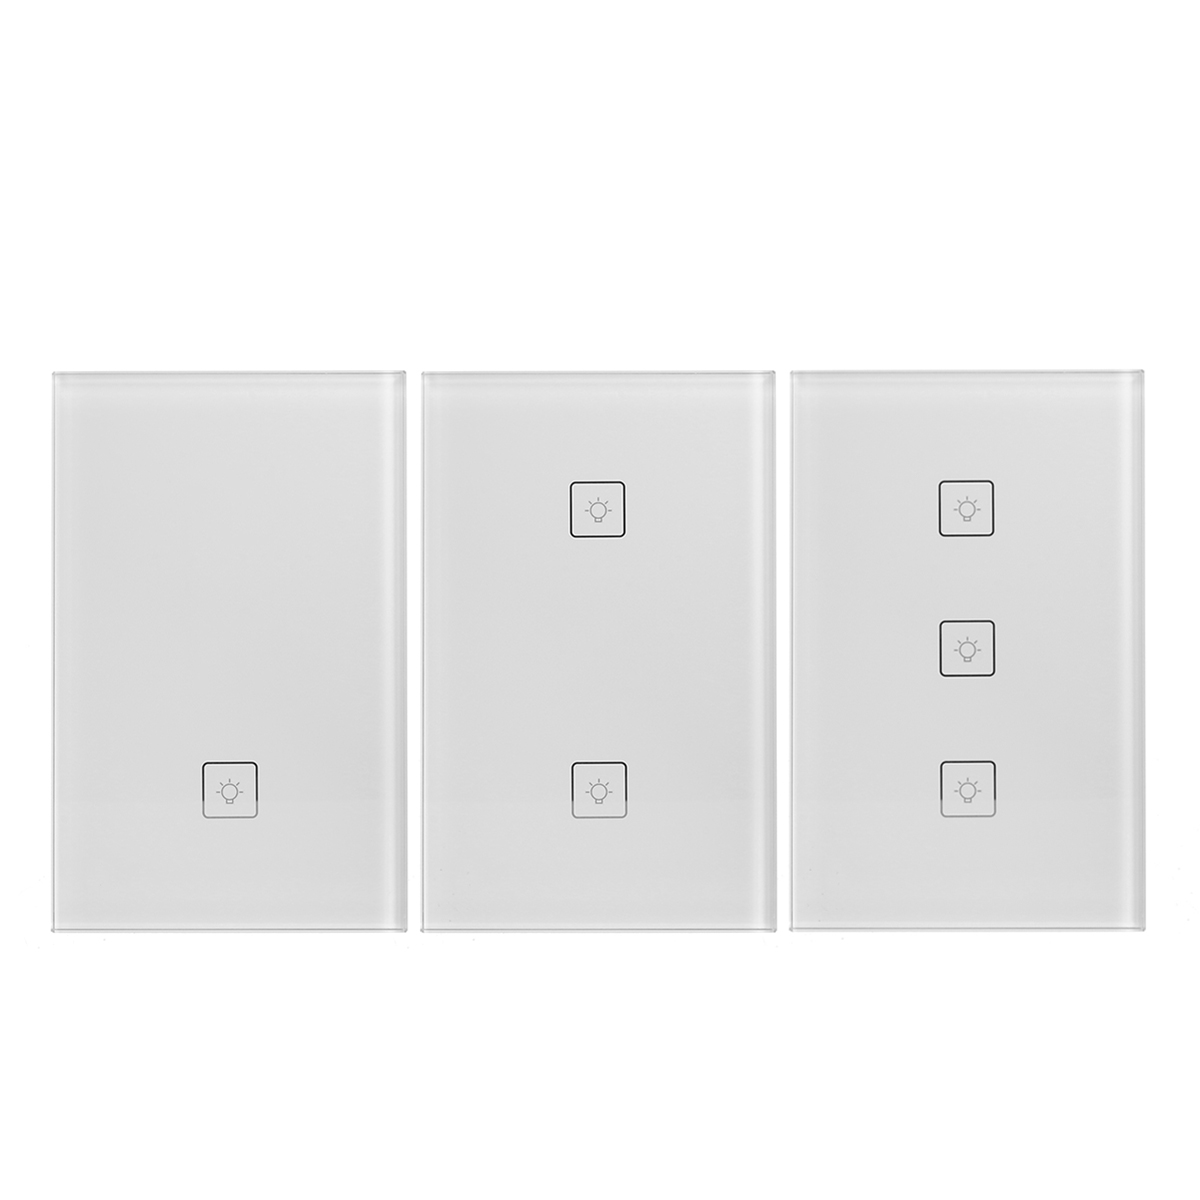 110 240v wireless remote control smart wall light switch works with amazon alexa us standard. Black Bedroom Furniture Sets. Home Design Ideas